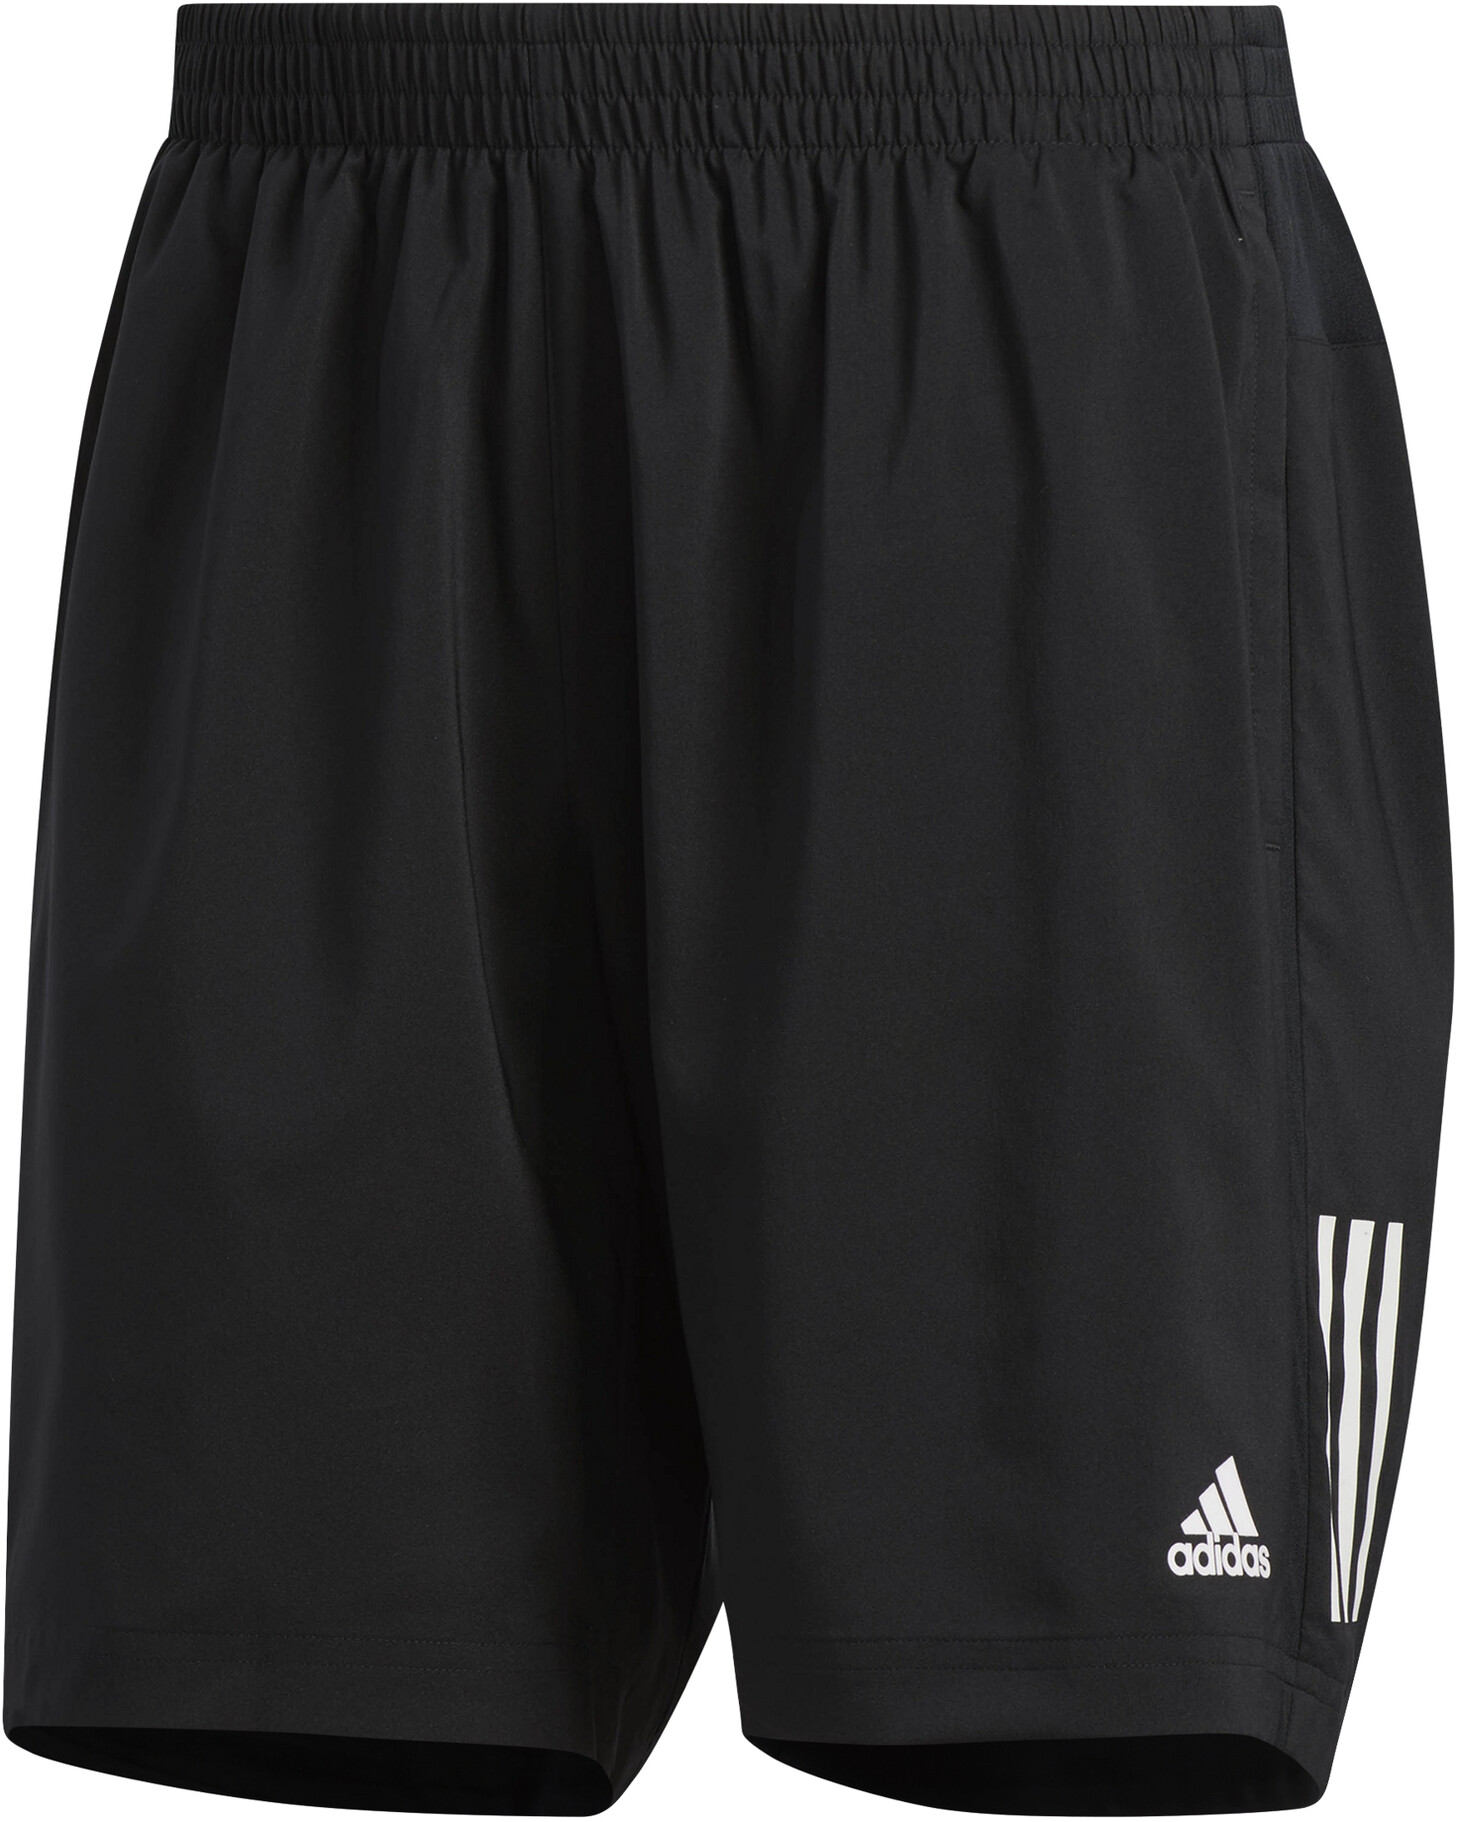 "adidas Own The Run Shorts 5"" Herrer, black (2019) 